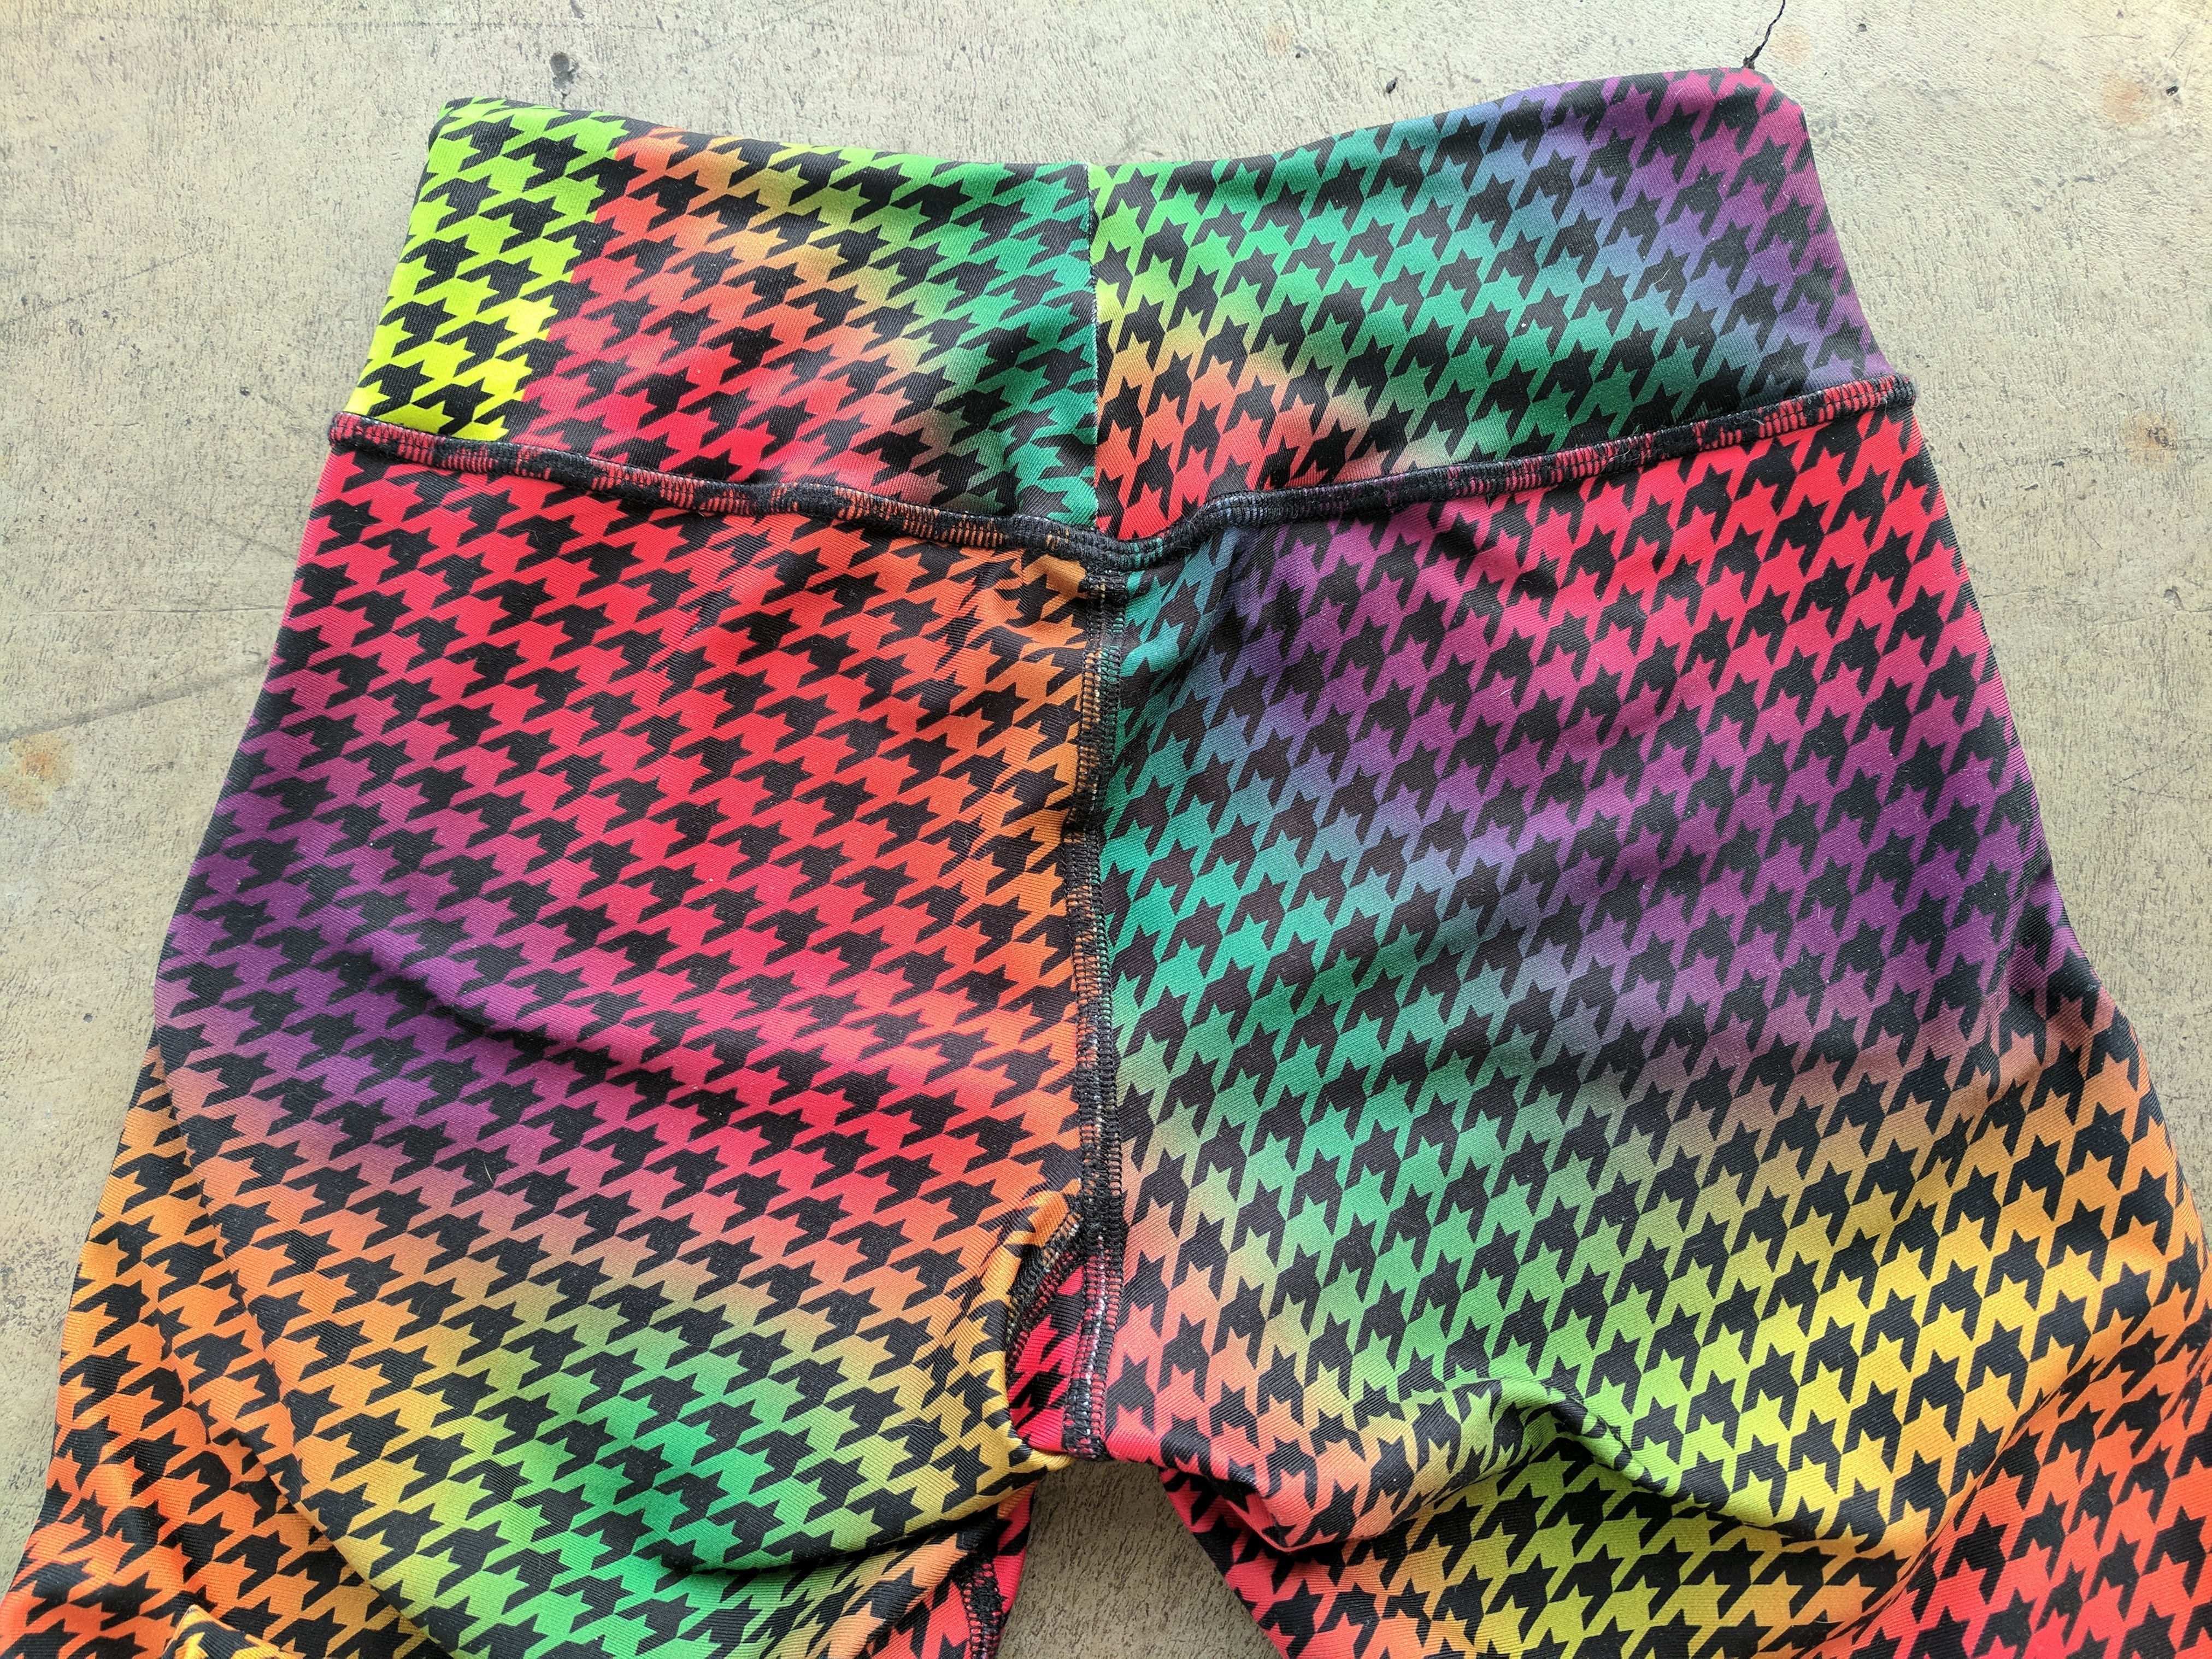 body angel activewear rainbow houndstooth waistband back